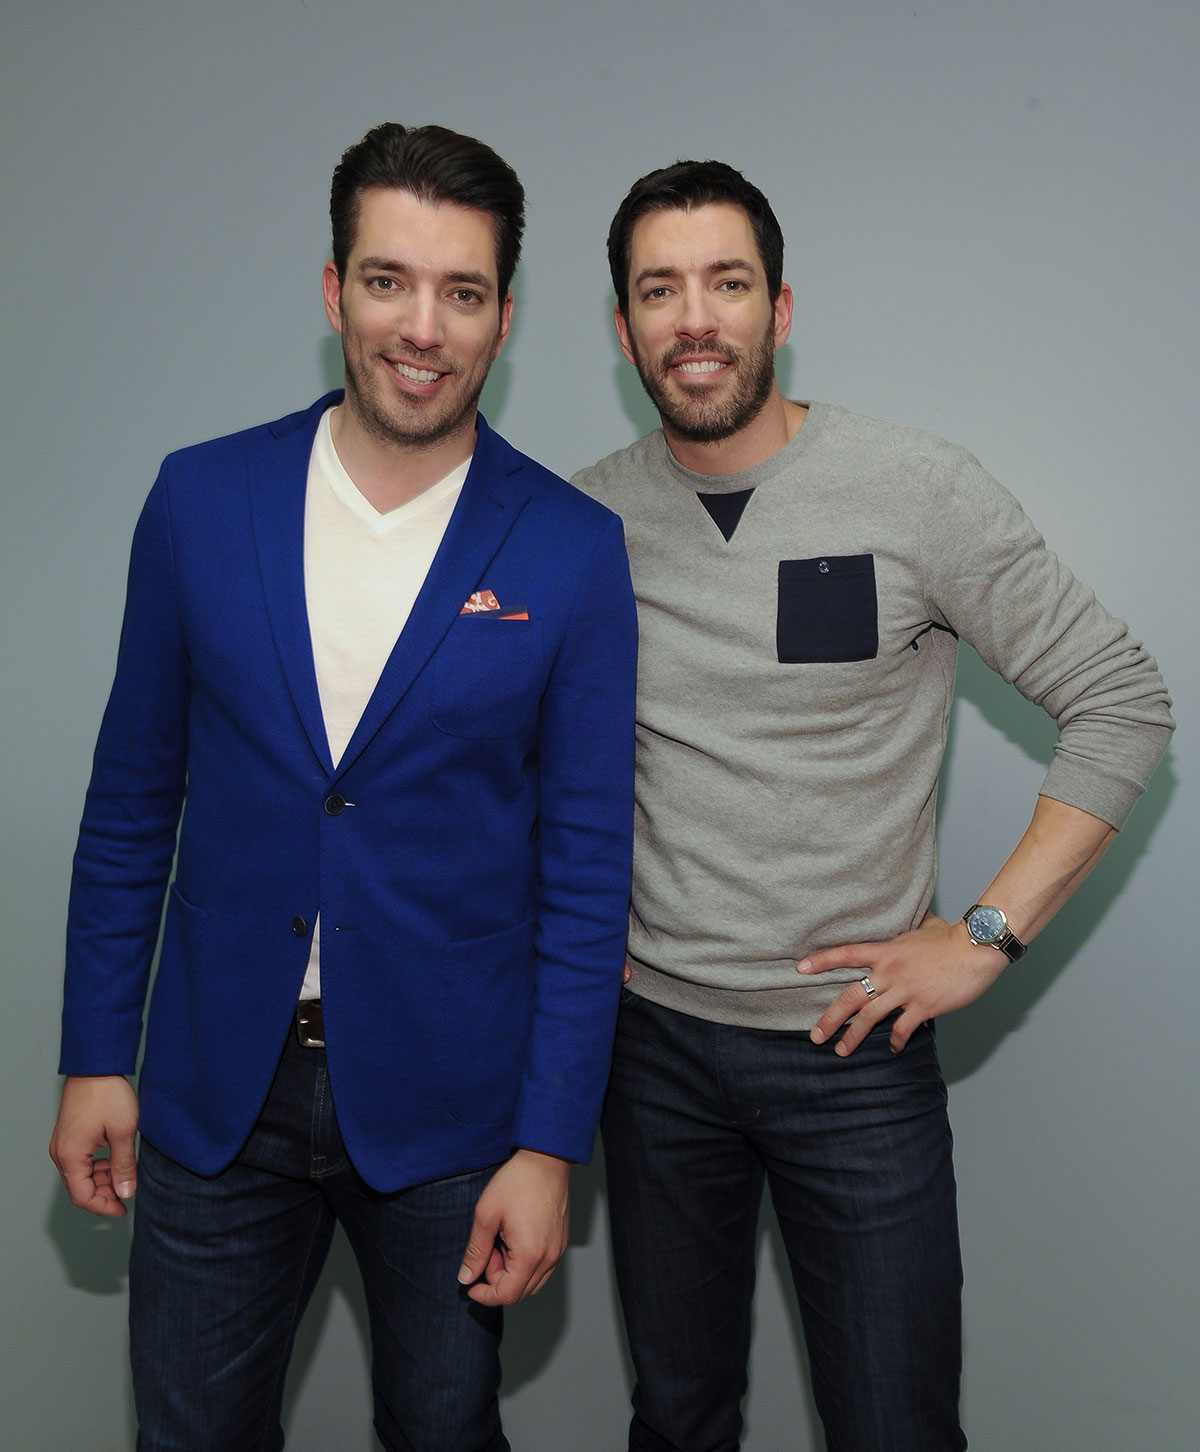 5 Home Shopping Tips From the Property Brothers